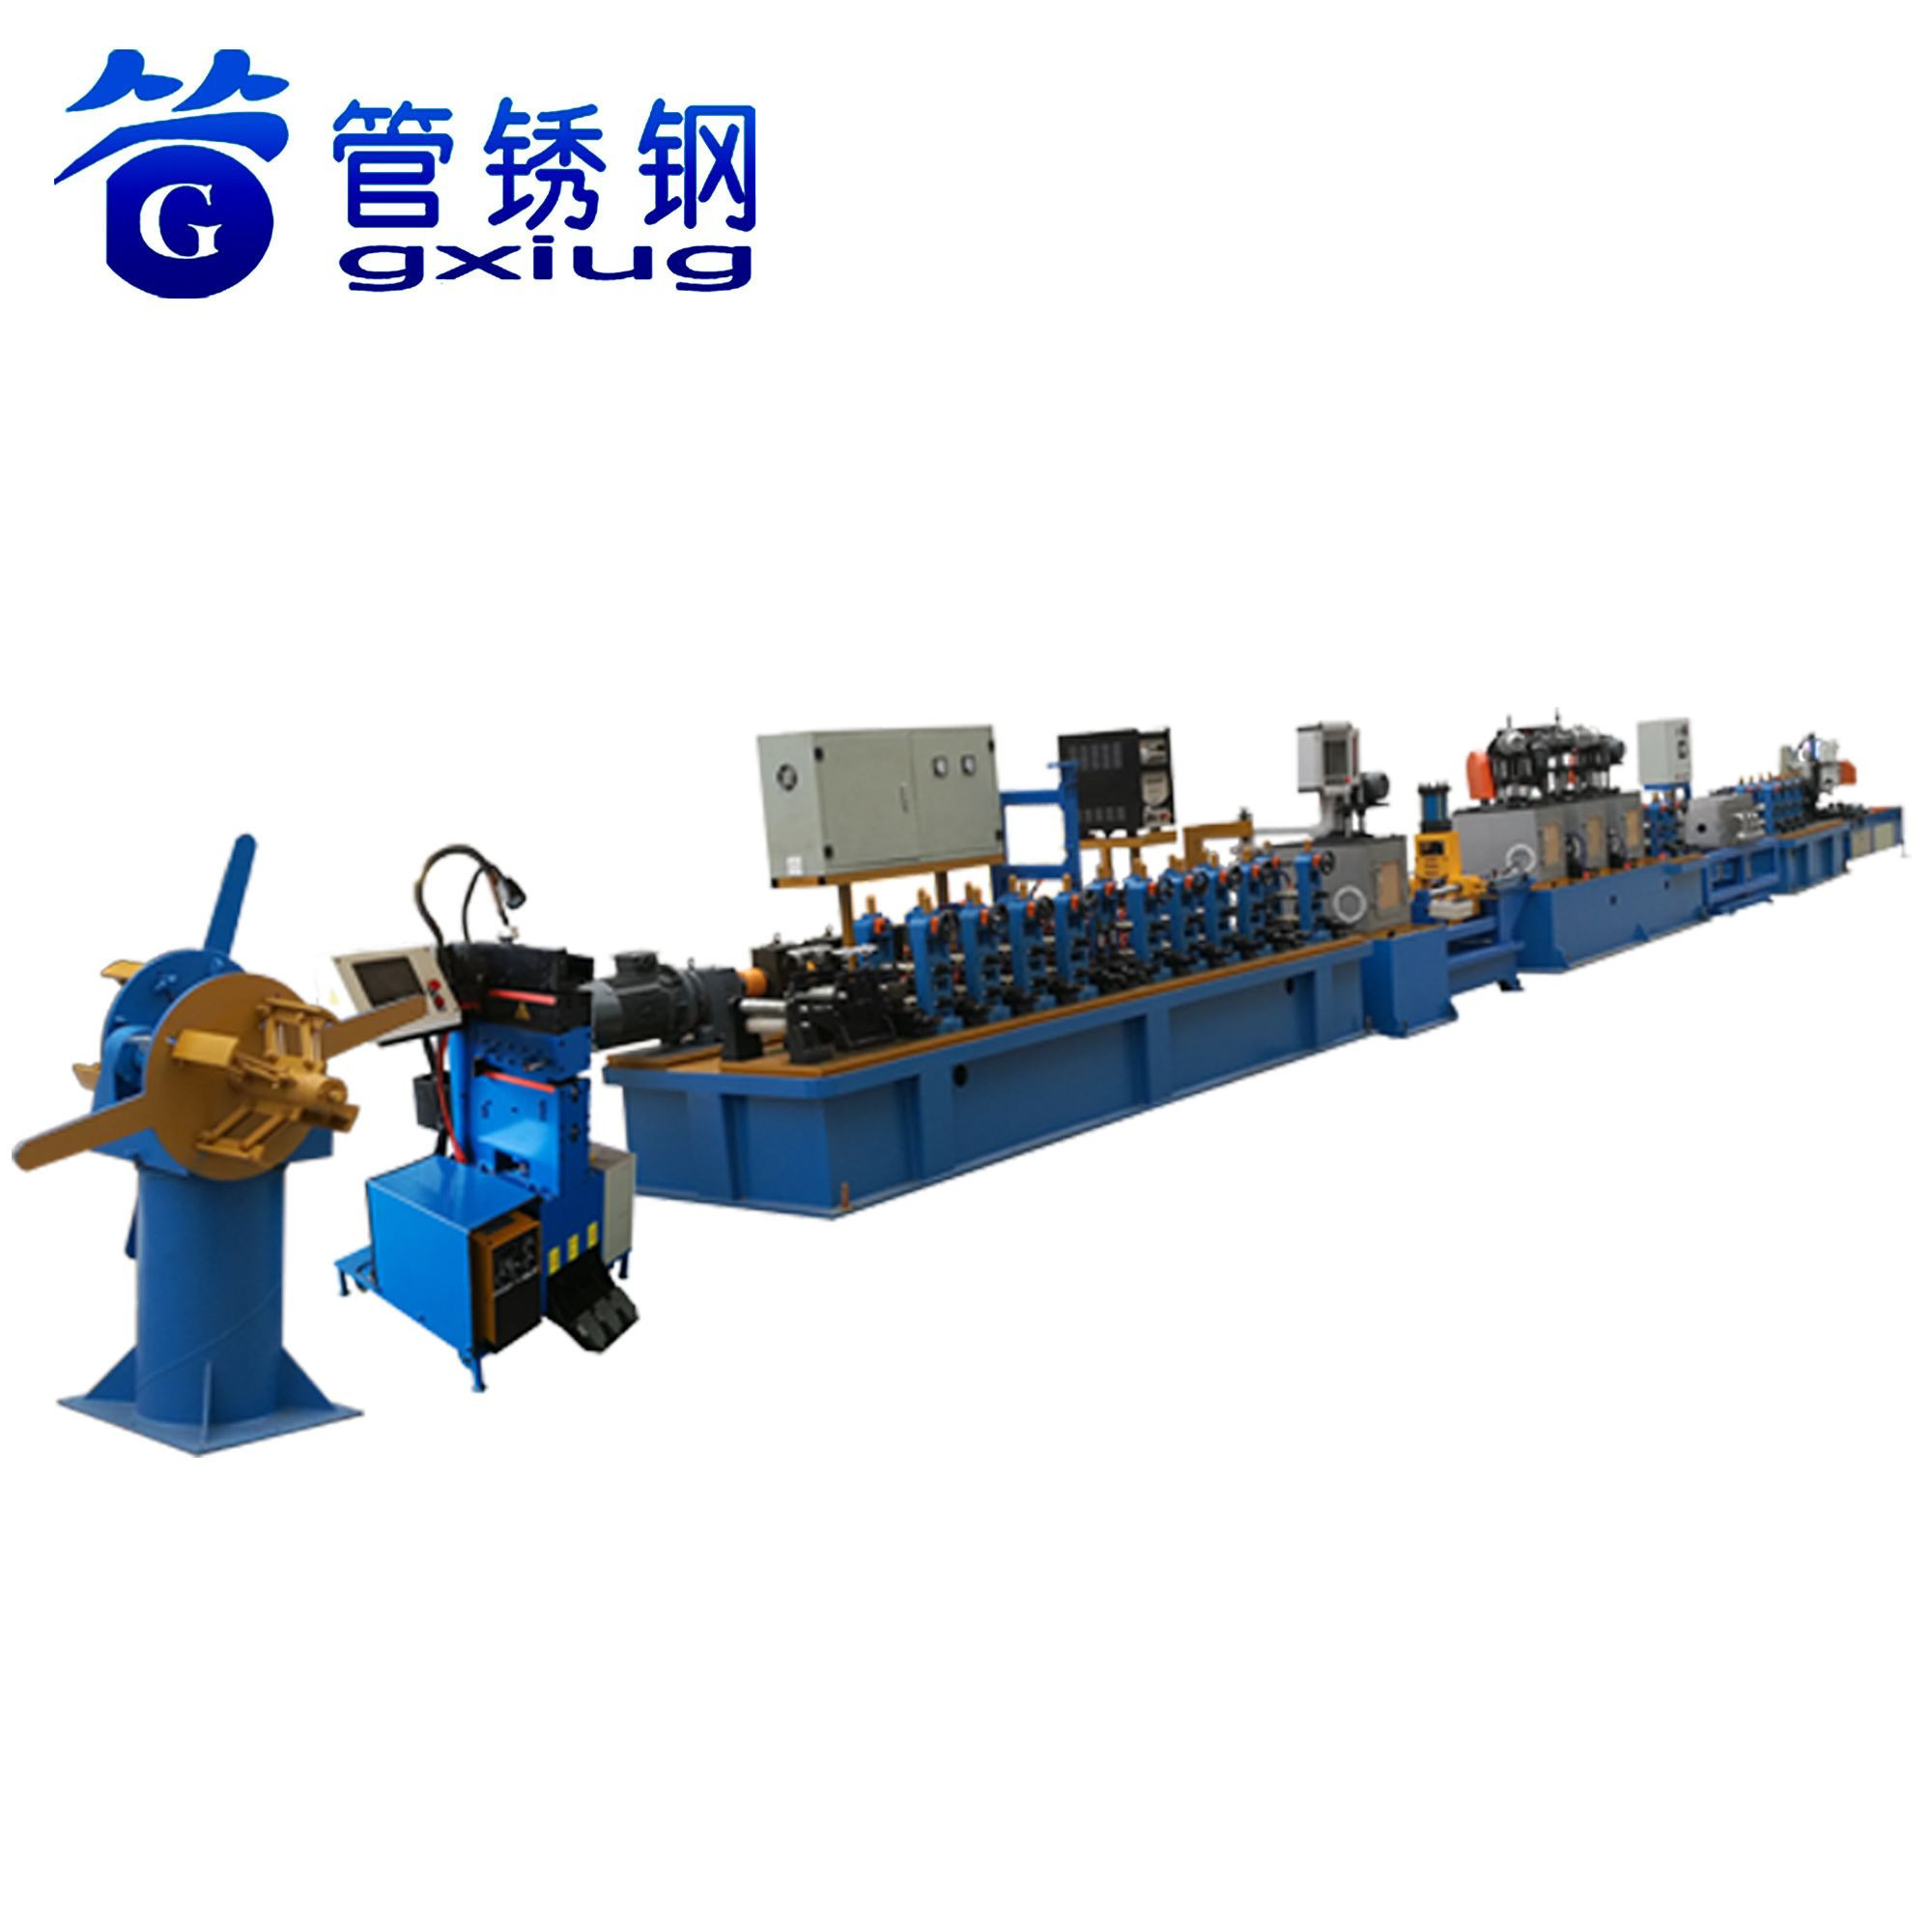 Industrial Automatic Stainless Steel Round Tube Welding Pipe Making Machine